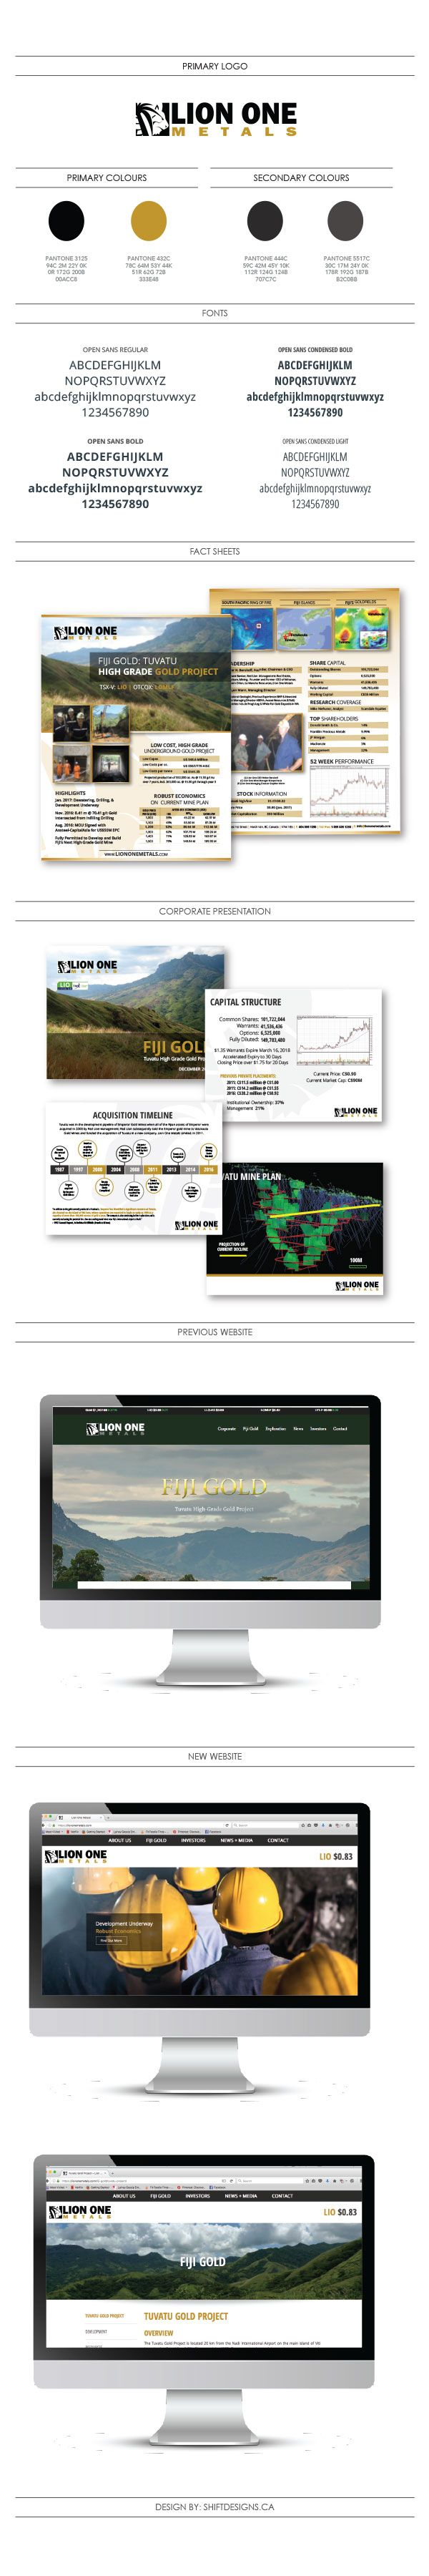 Lion One Metals is a Mining Company located in North Vancouver BC that was in desperate need of a Brand Overhaul. Over the course of 6 months, I re-designed their Website, Marketing Materials and Email Newsletter. I'm very proud of the results. Read on